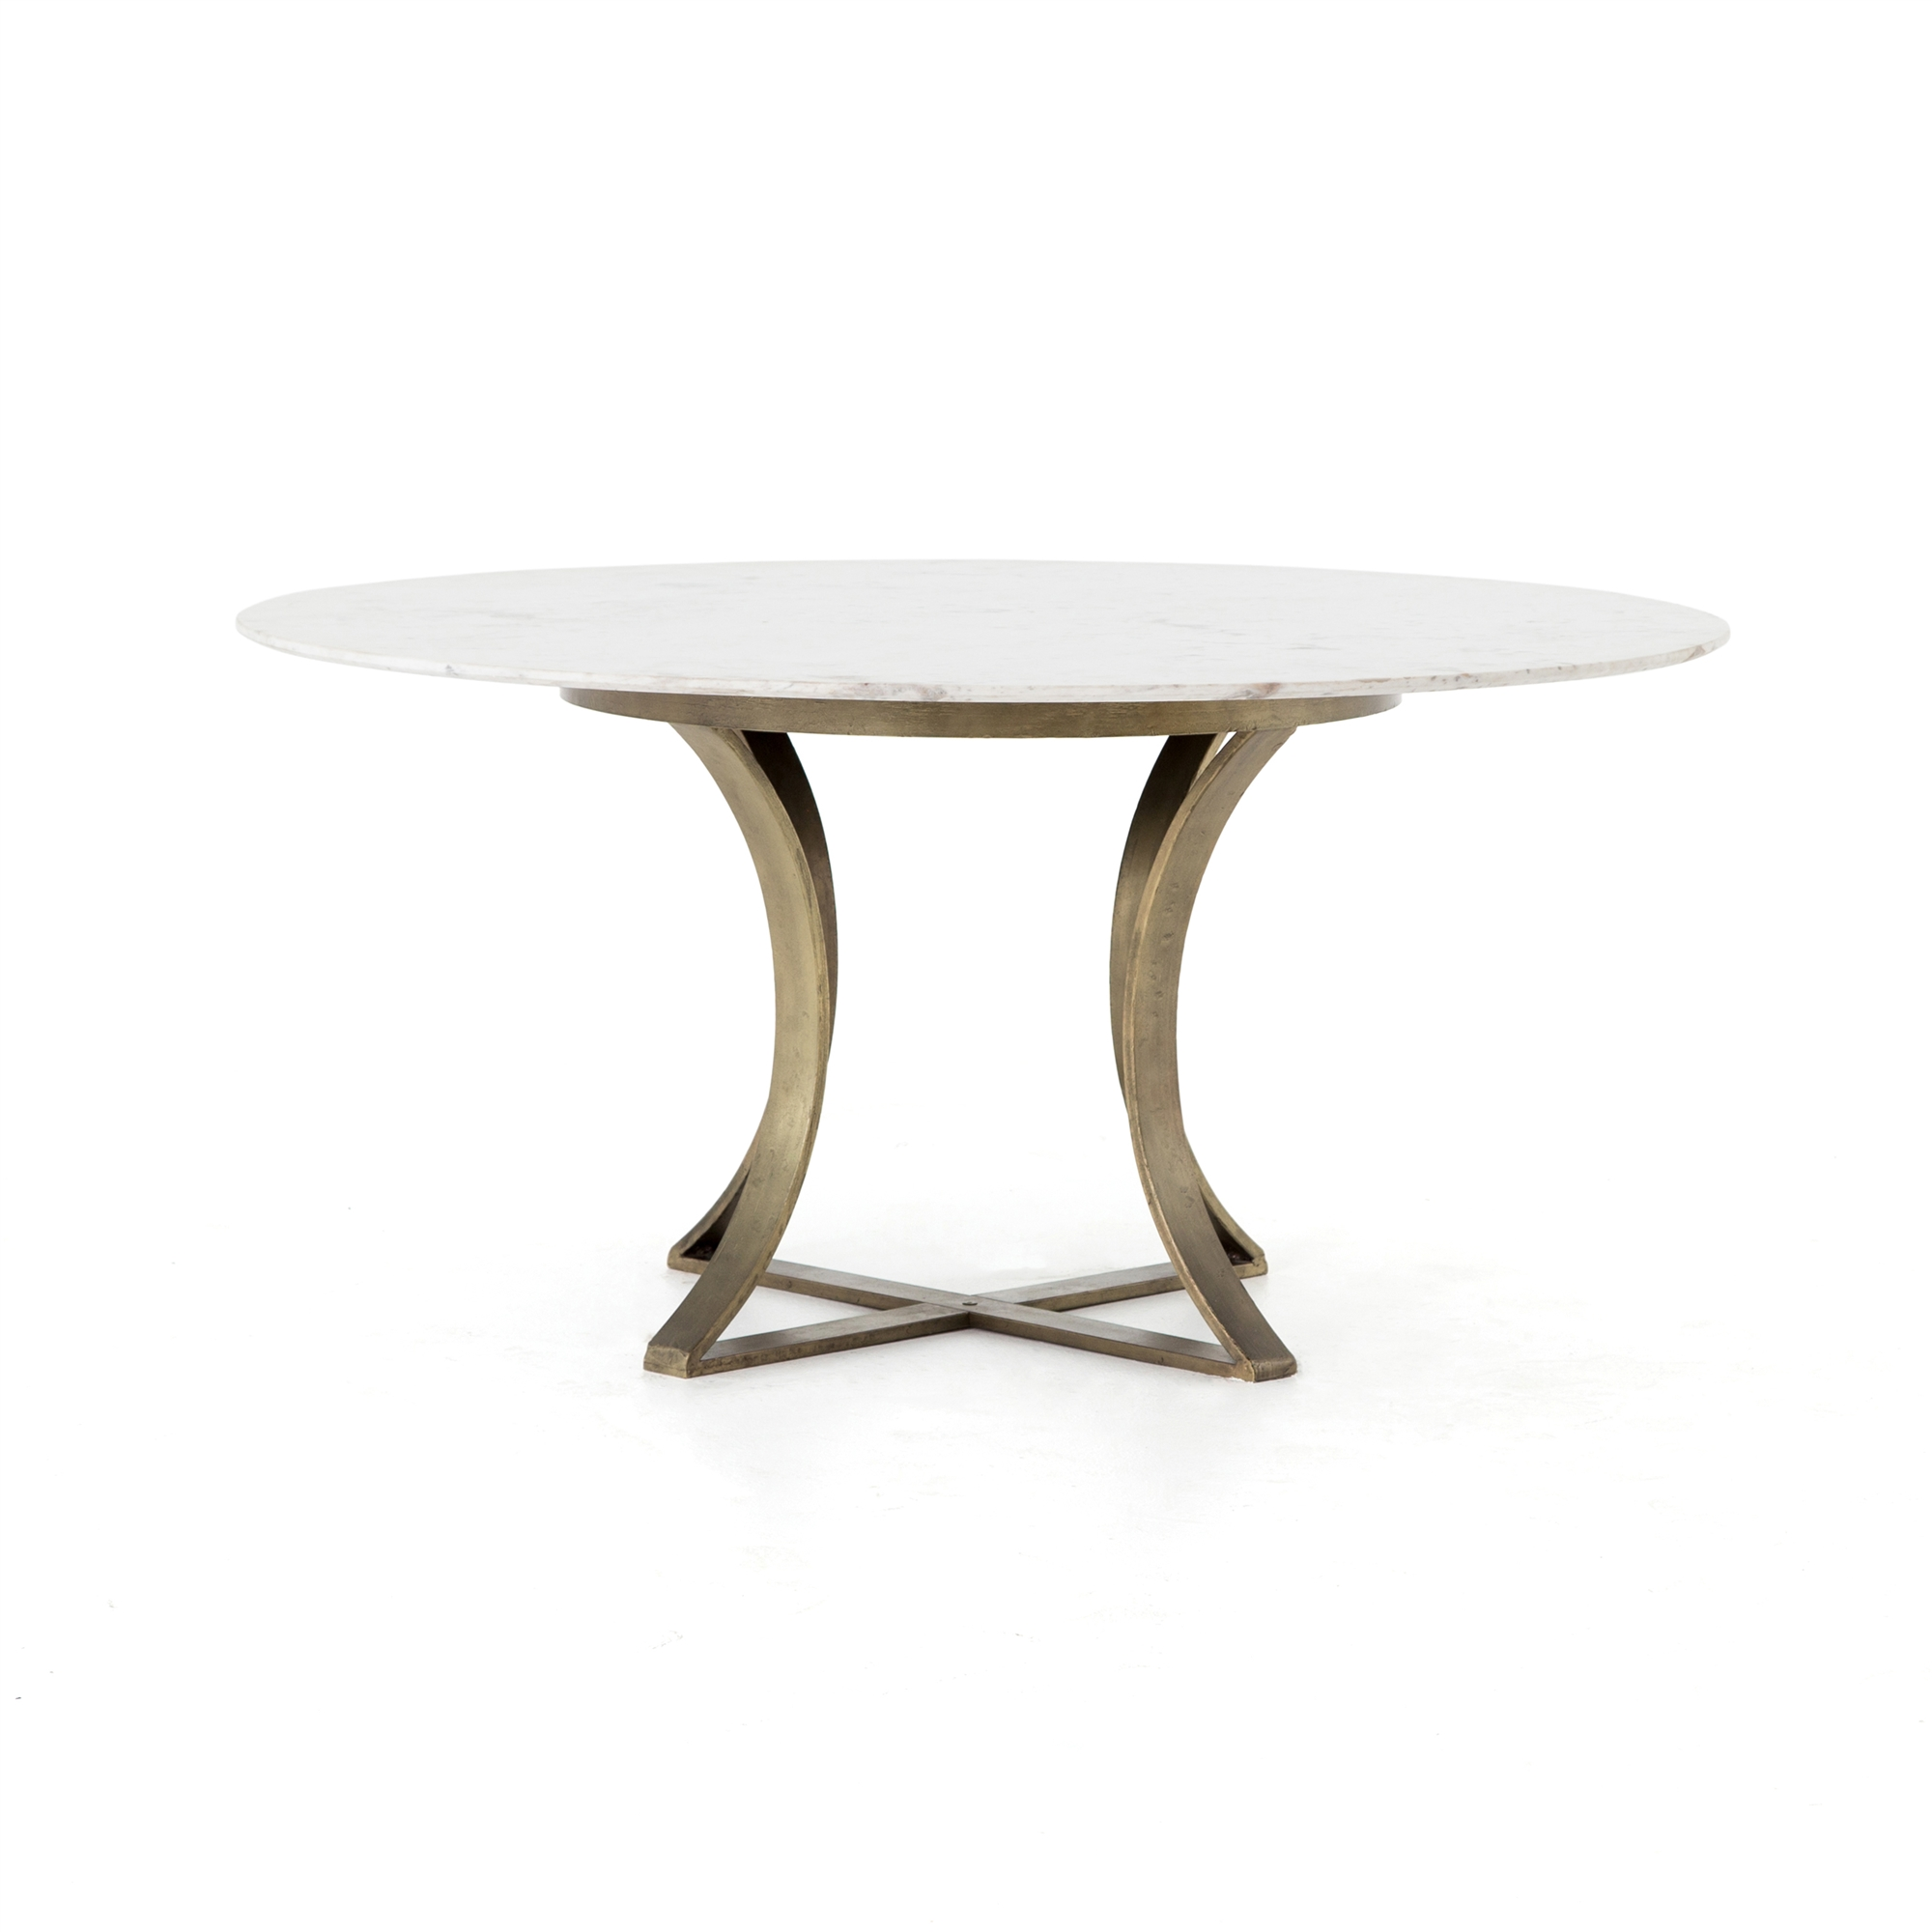 Rockwell Gage Round Dining Table 60 With Marble Top The Khazana